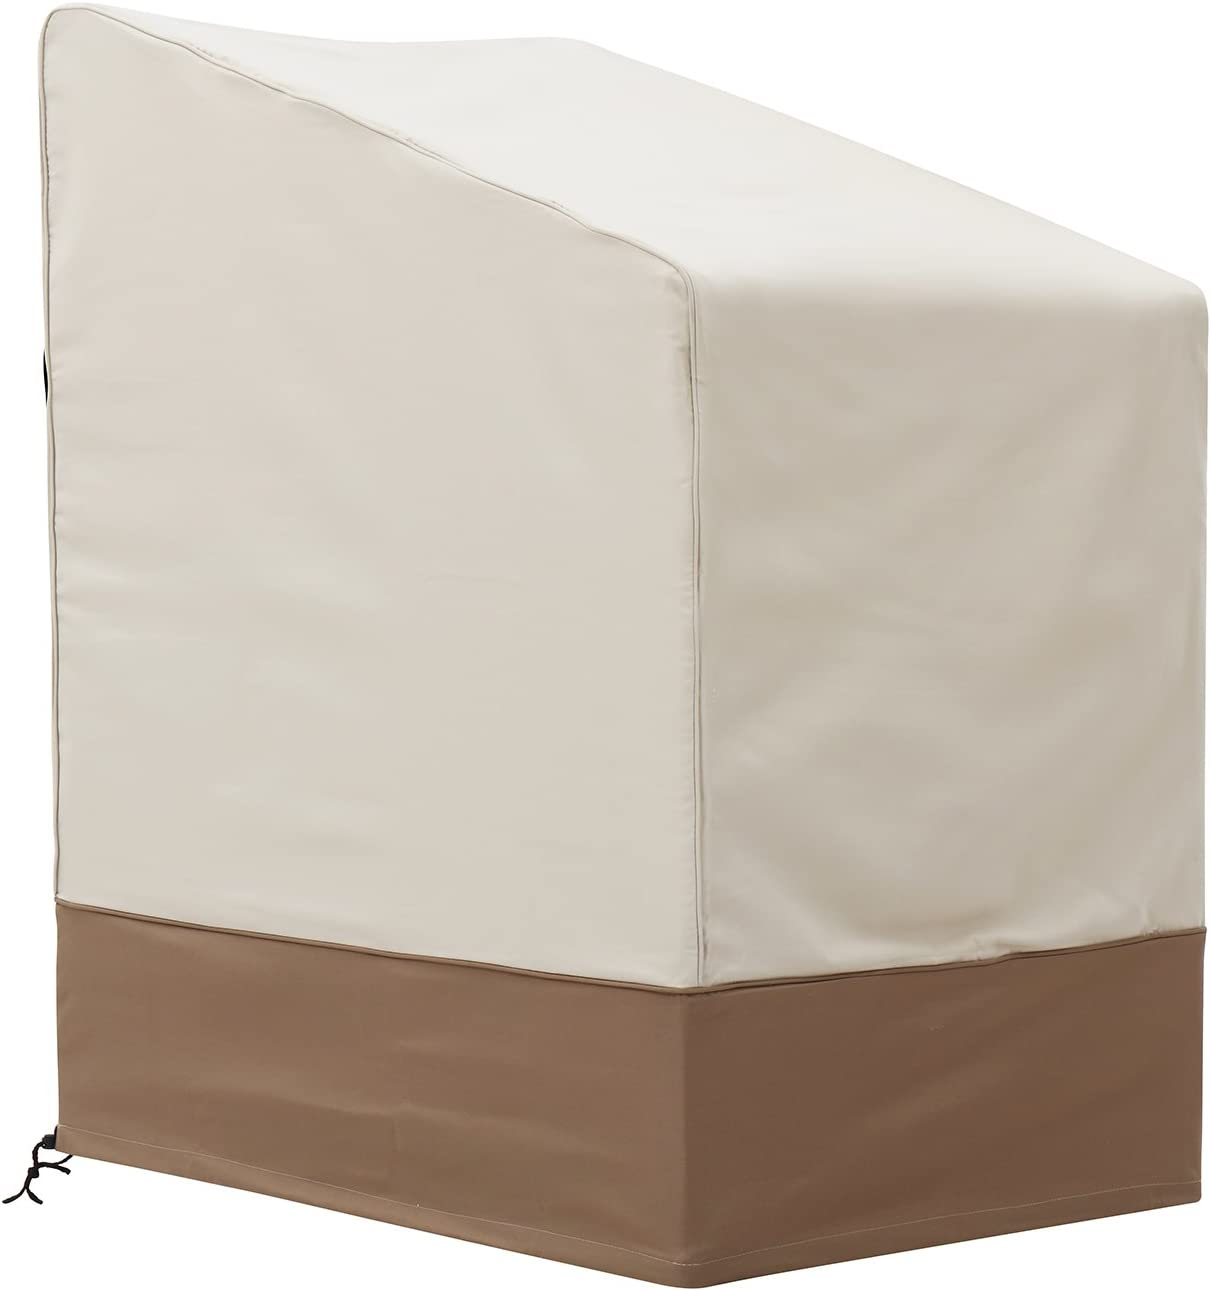 Finnhomy Patio Stacking Chair Cover for Outdoor Furniture Waterproof Garden StackableChair Cover Durable Weather Fade Resistant